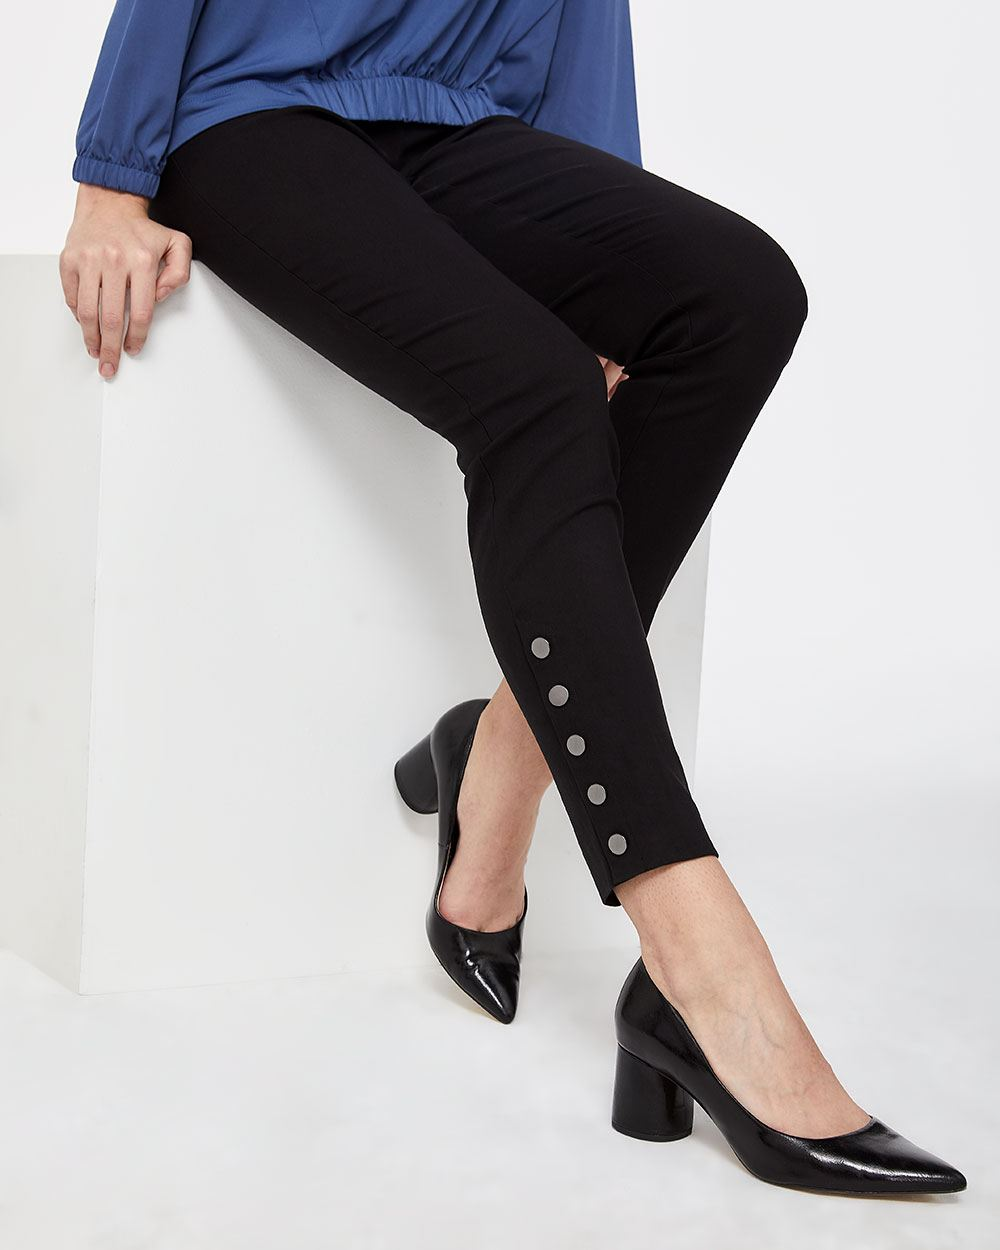 The Iconic Slim Leg Pants with Side Snaps